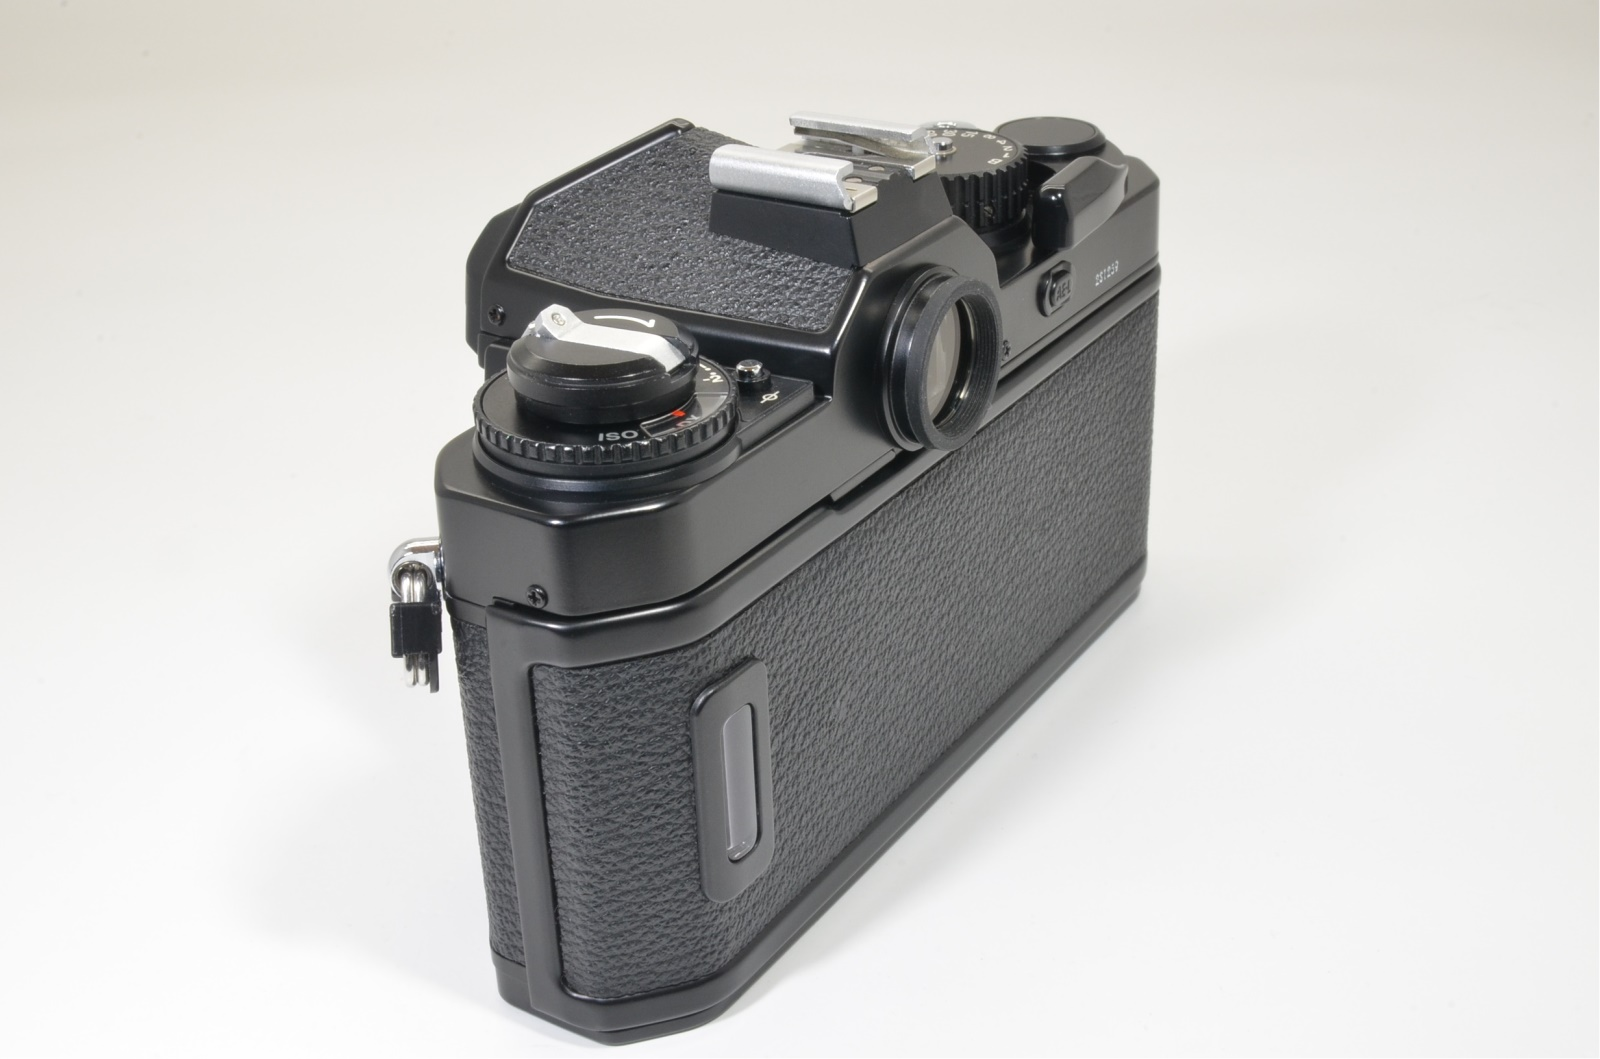 nikon fm3a 35mm film camera black with e3 focusing screen shooting tested